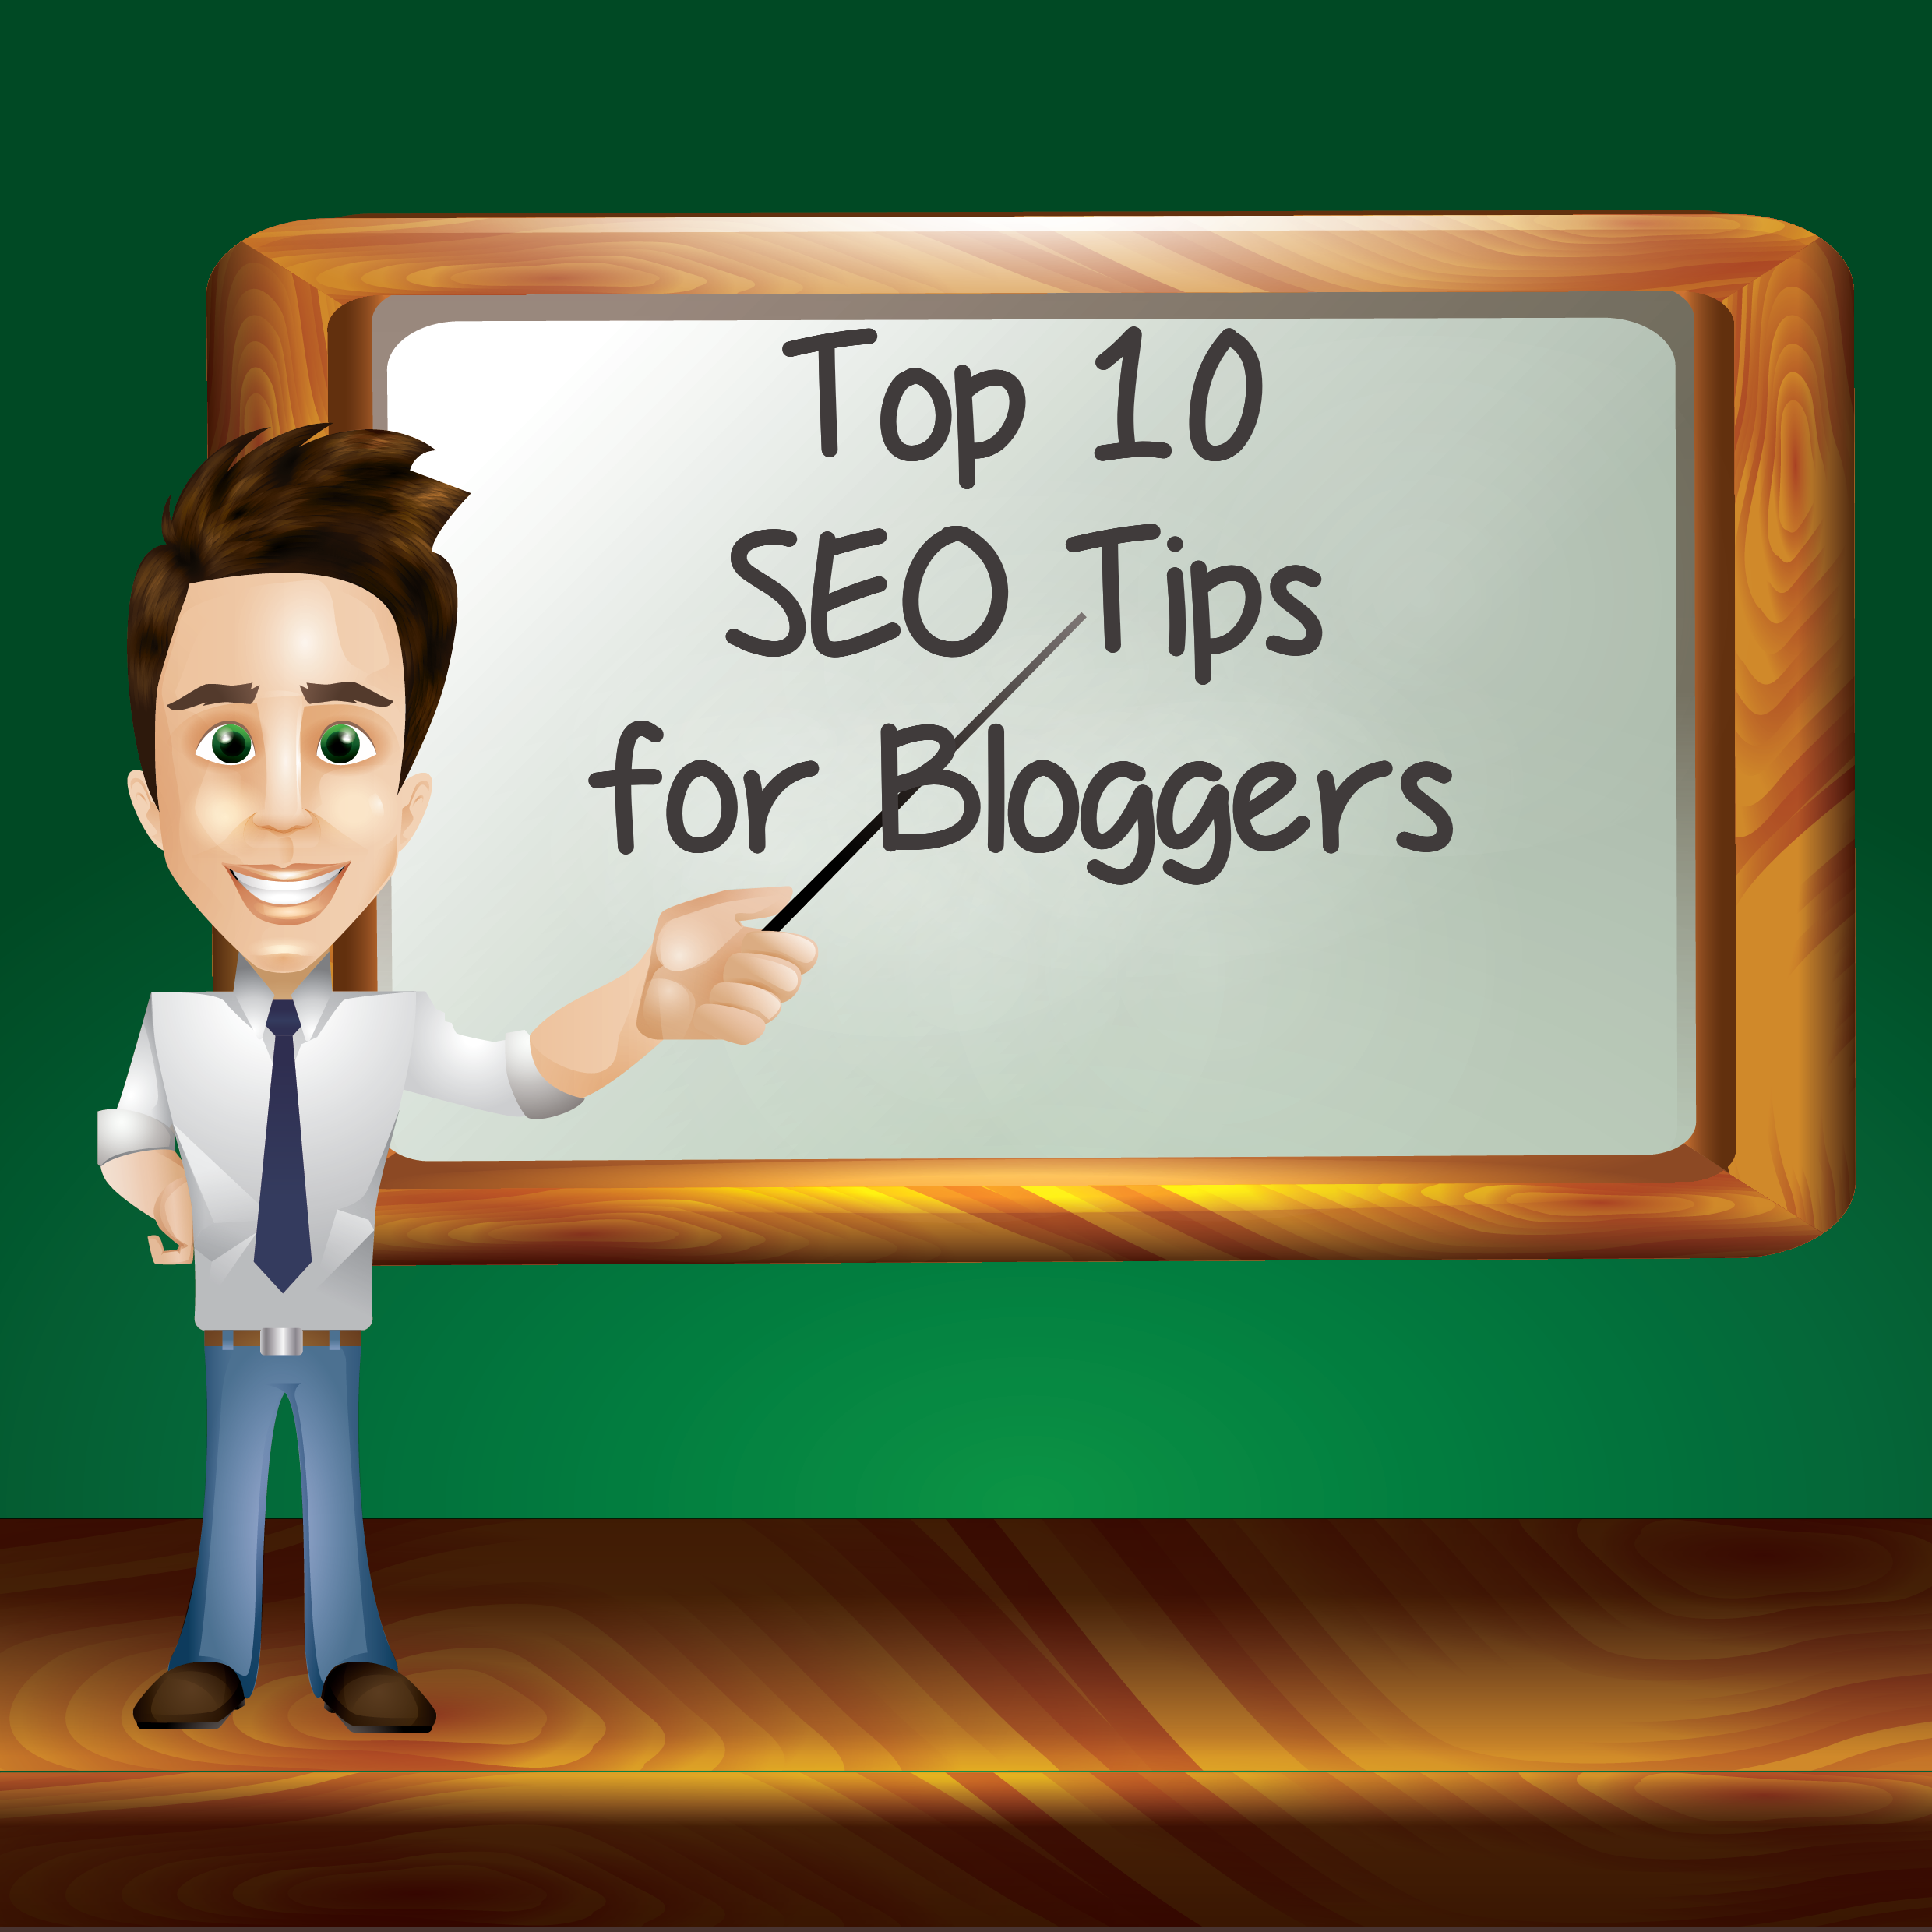 Whats the best way to do SEO for my blog?